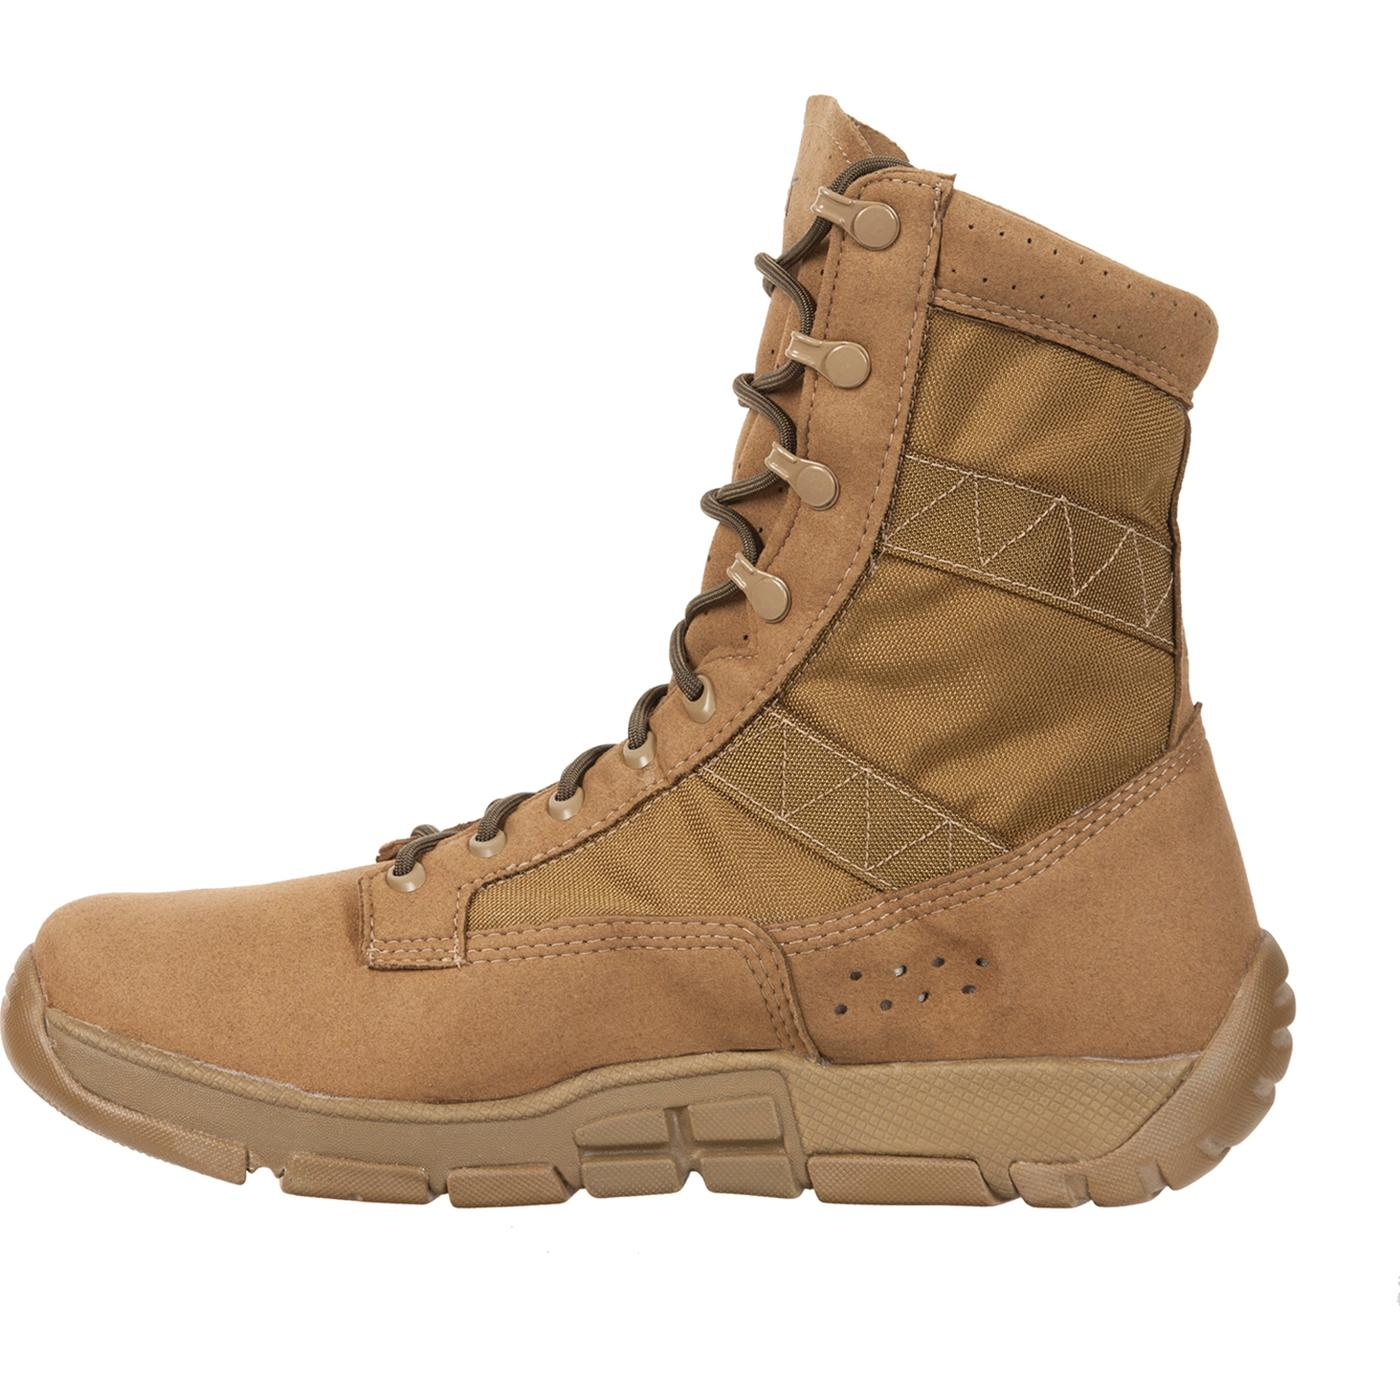 Rocky C4T Trainer Military BootRocky C4T Trainer Military Boot c042ec369